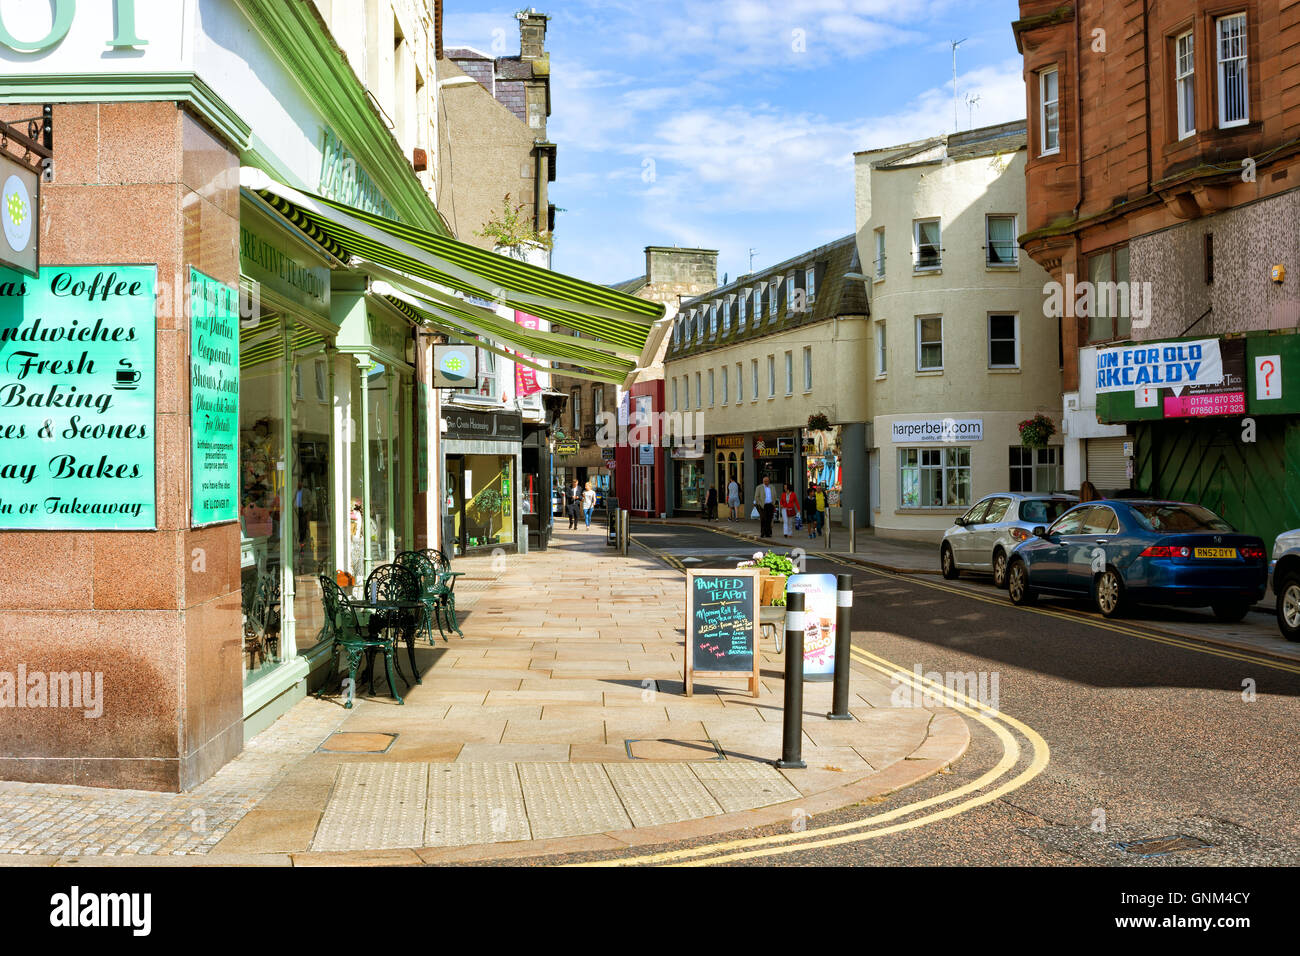 KIRKCALDY, SCOTLAND/UK – AUGUST 27, 2016: View of High Street shops and cafes in Kirkcaldy on August 27, 2016. - Stock Image